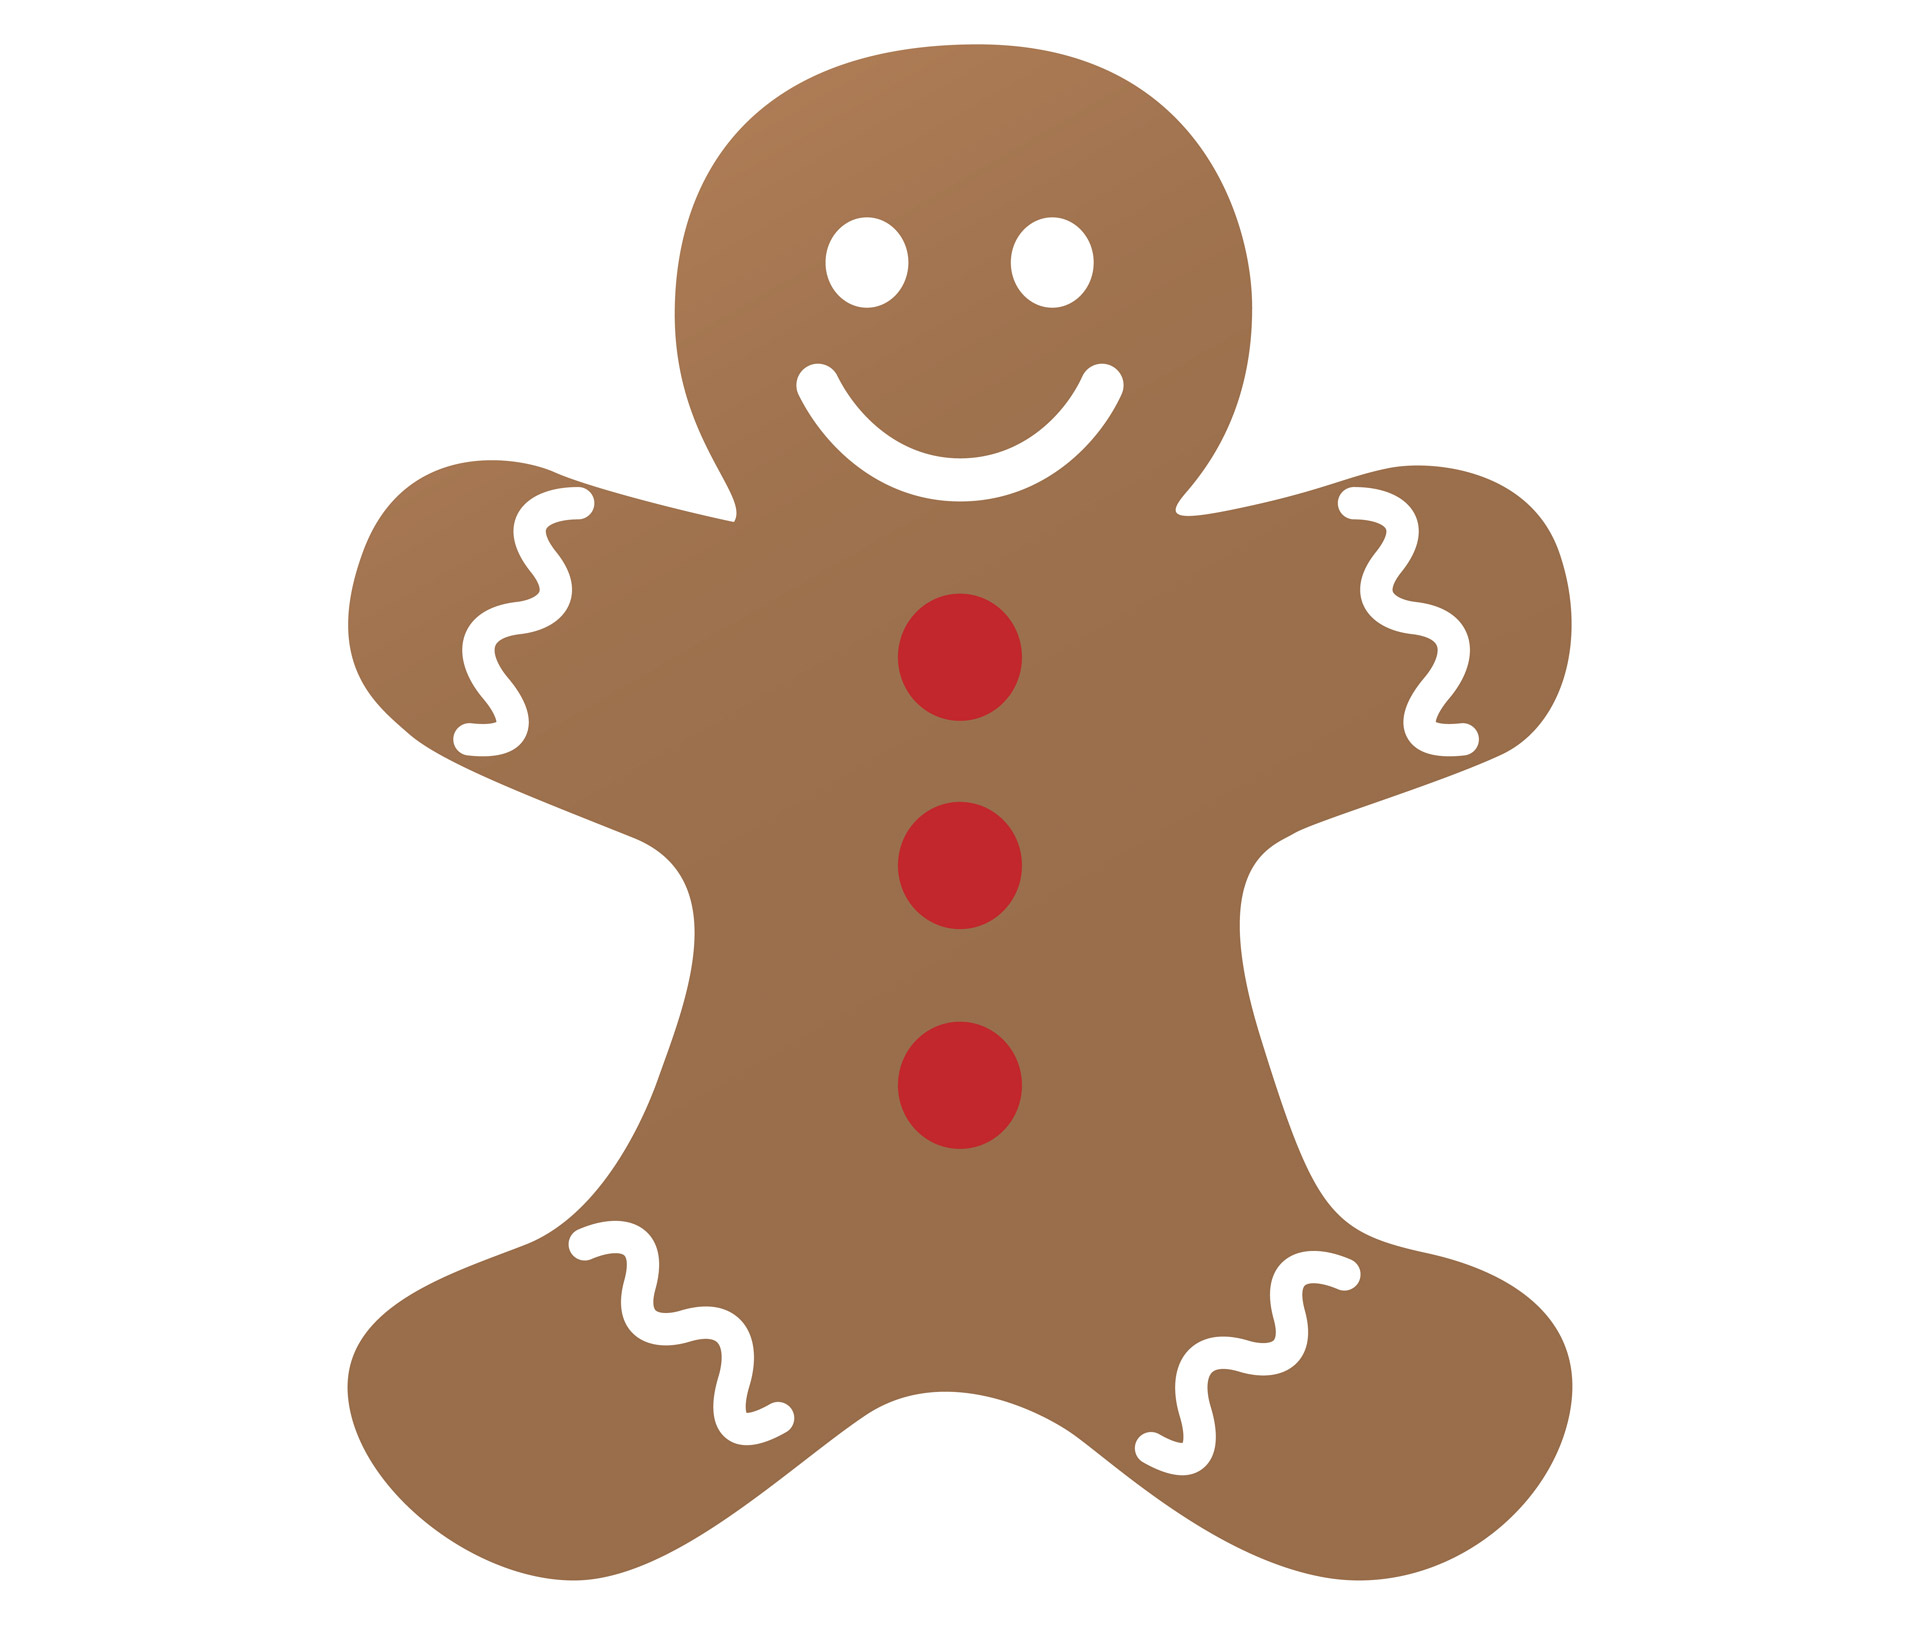 Gingerbread free clipart clip art stock Free Gingerbread Man Cliparts, Download Free Clip Art, Free Clip Art ... clip art stock